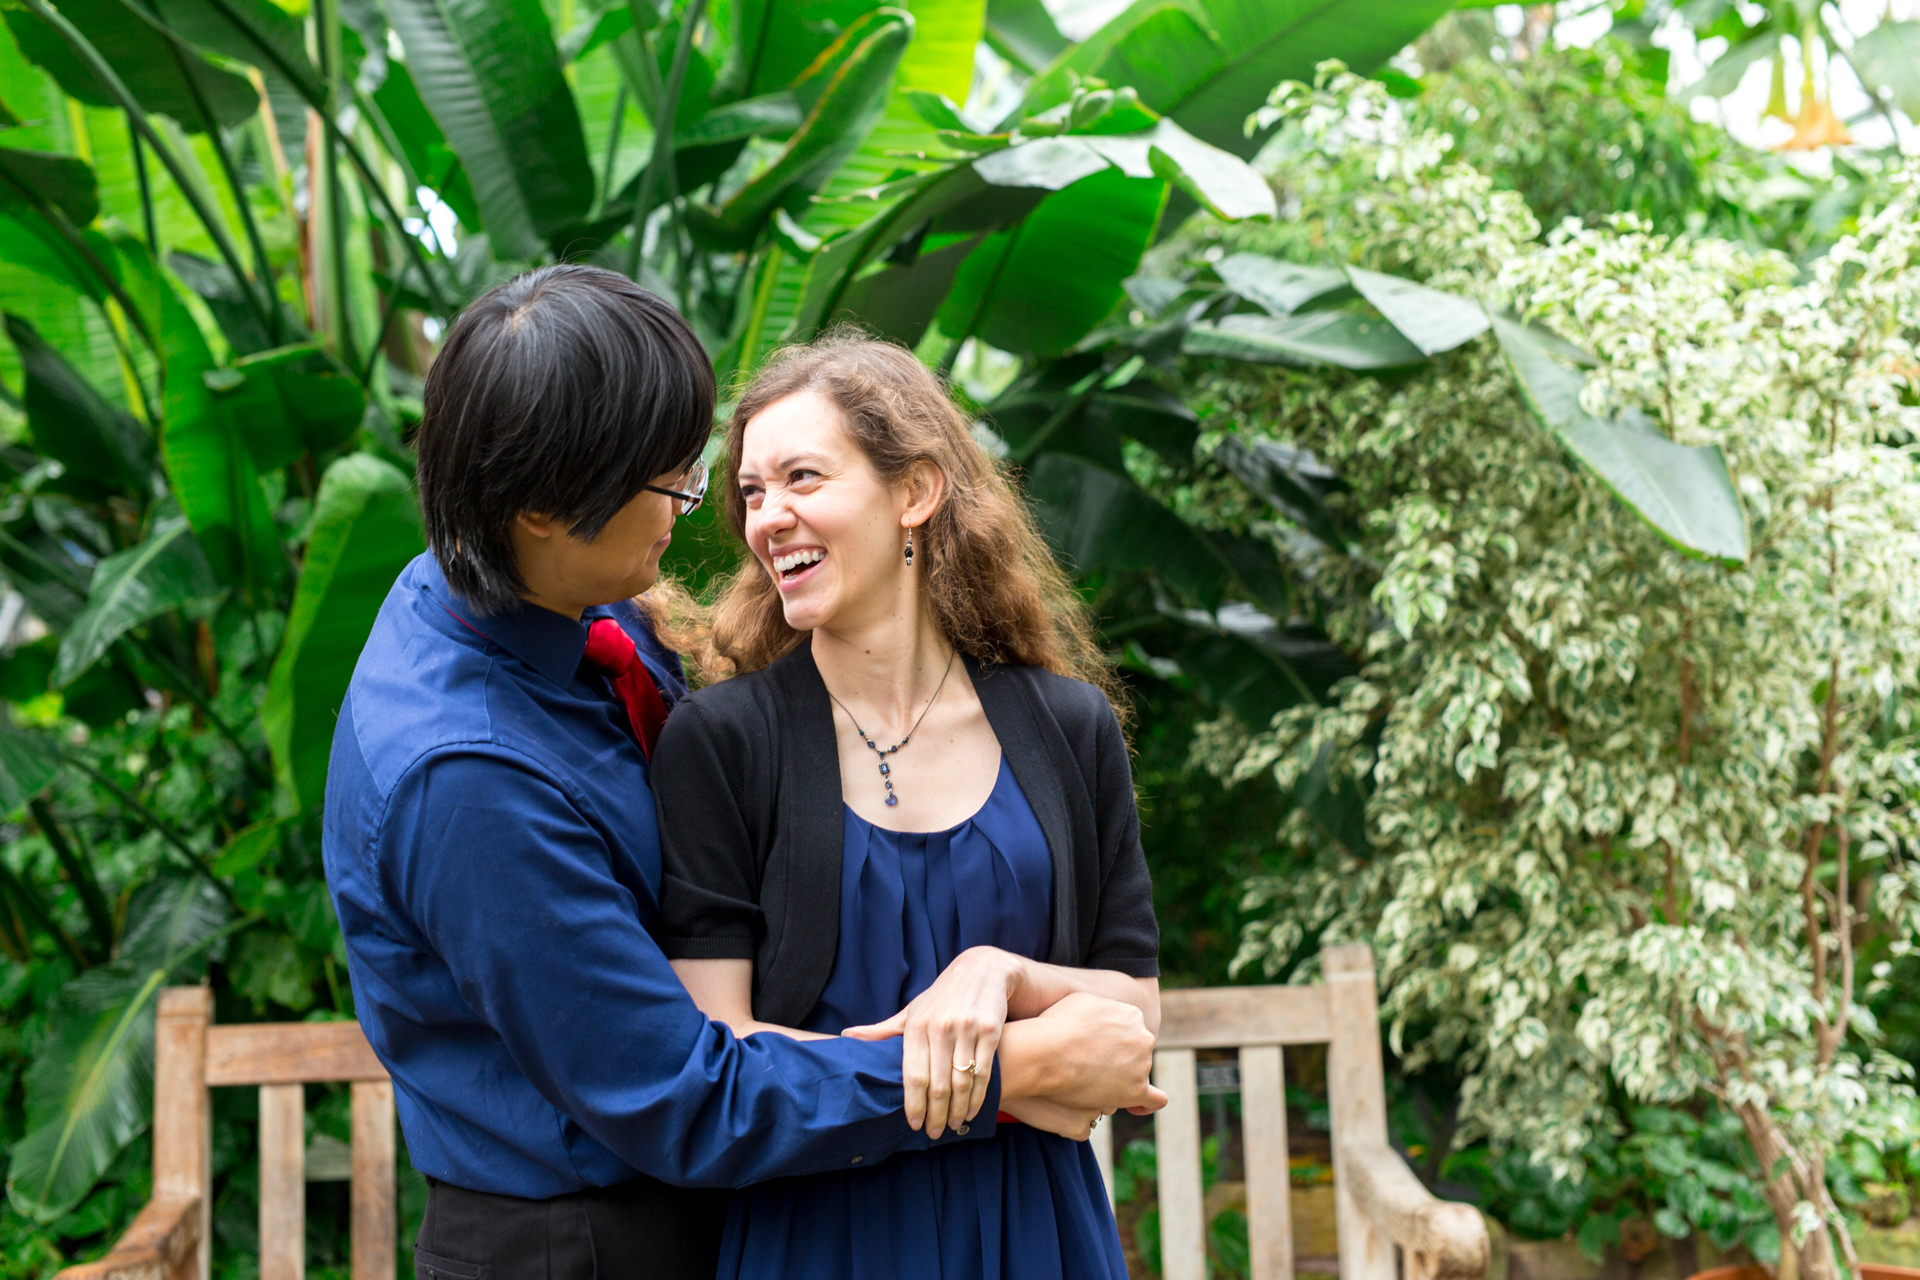 luthy botanical gardens greenhouse engagement biracial couple peoria centrail illinois wedding photographer photographers bloomington normal illinois valley lasalle peru ottawa-22.jpg